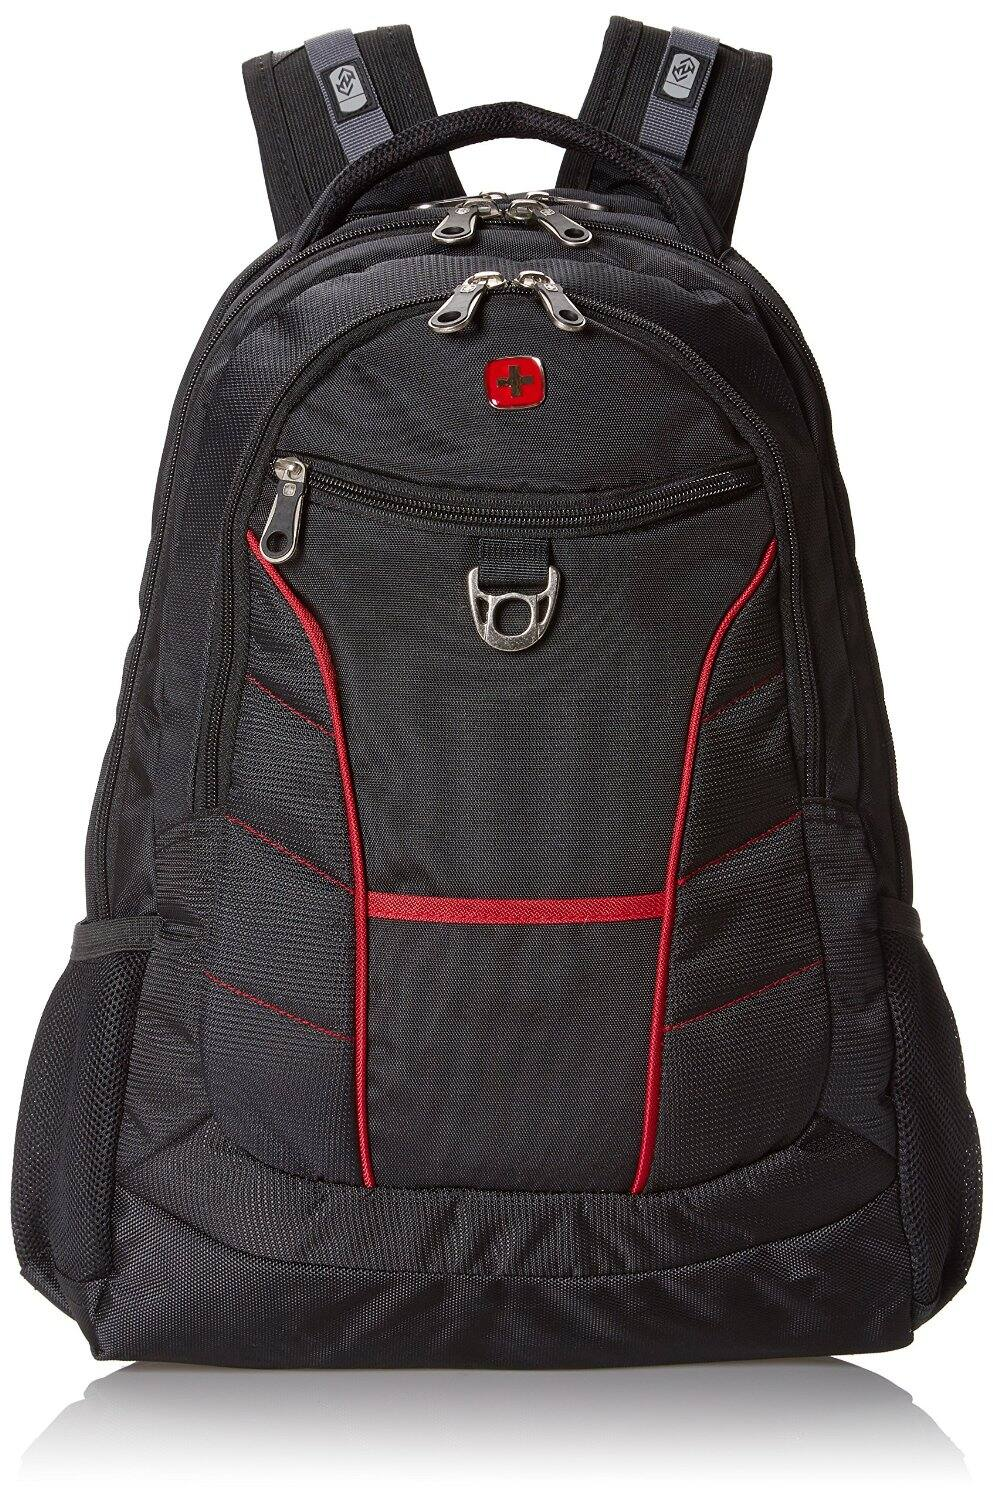 SwissGear SA1775 Laptop Computer Backpack w/ Airflow Back System (Black & Red Accents) $18.03 + Free Shipping Amazon.com